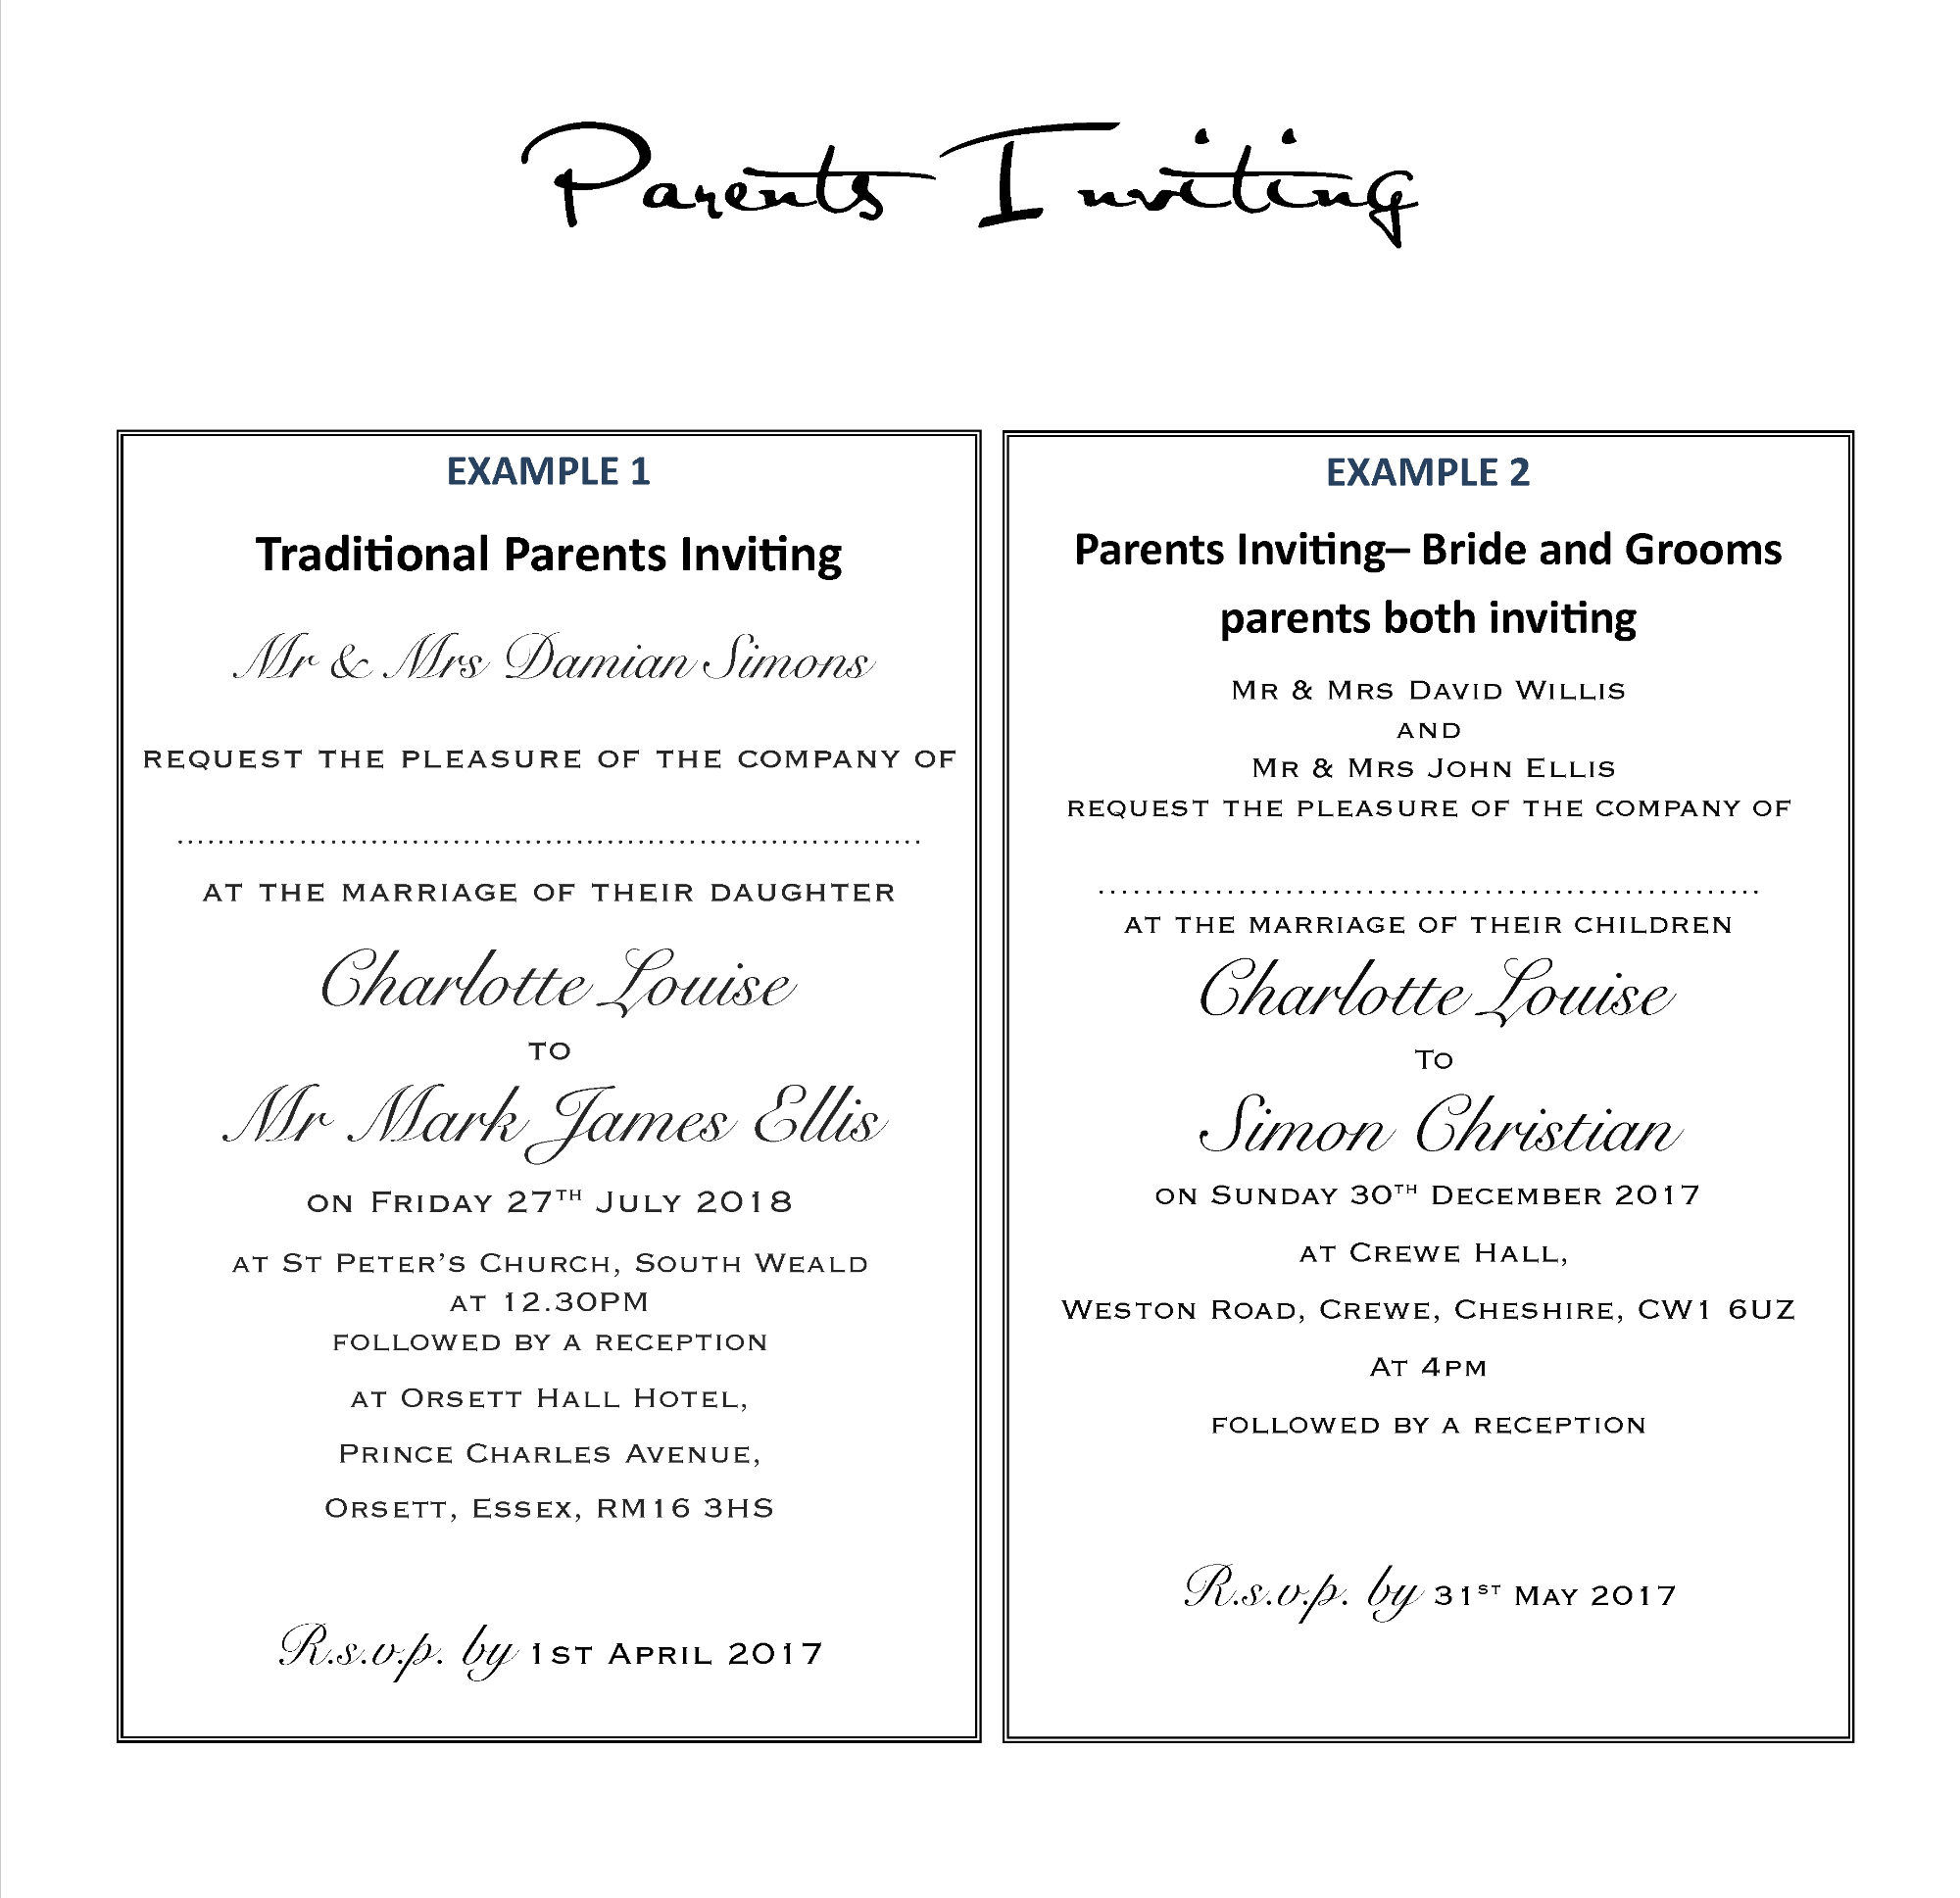 Wedding invitation wording examples amor designs traditional parents inviting wording for invitations stopboris Images